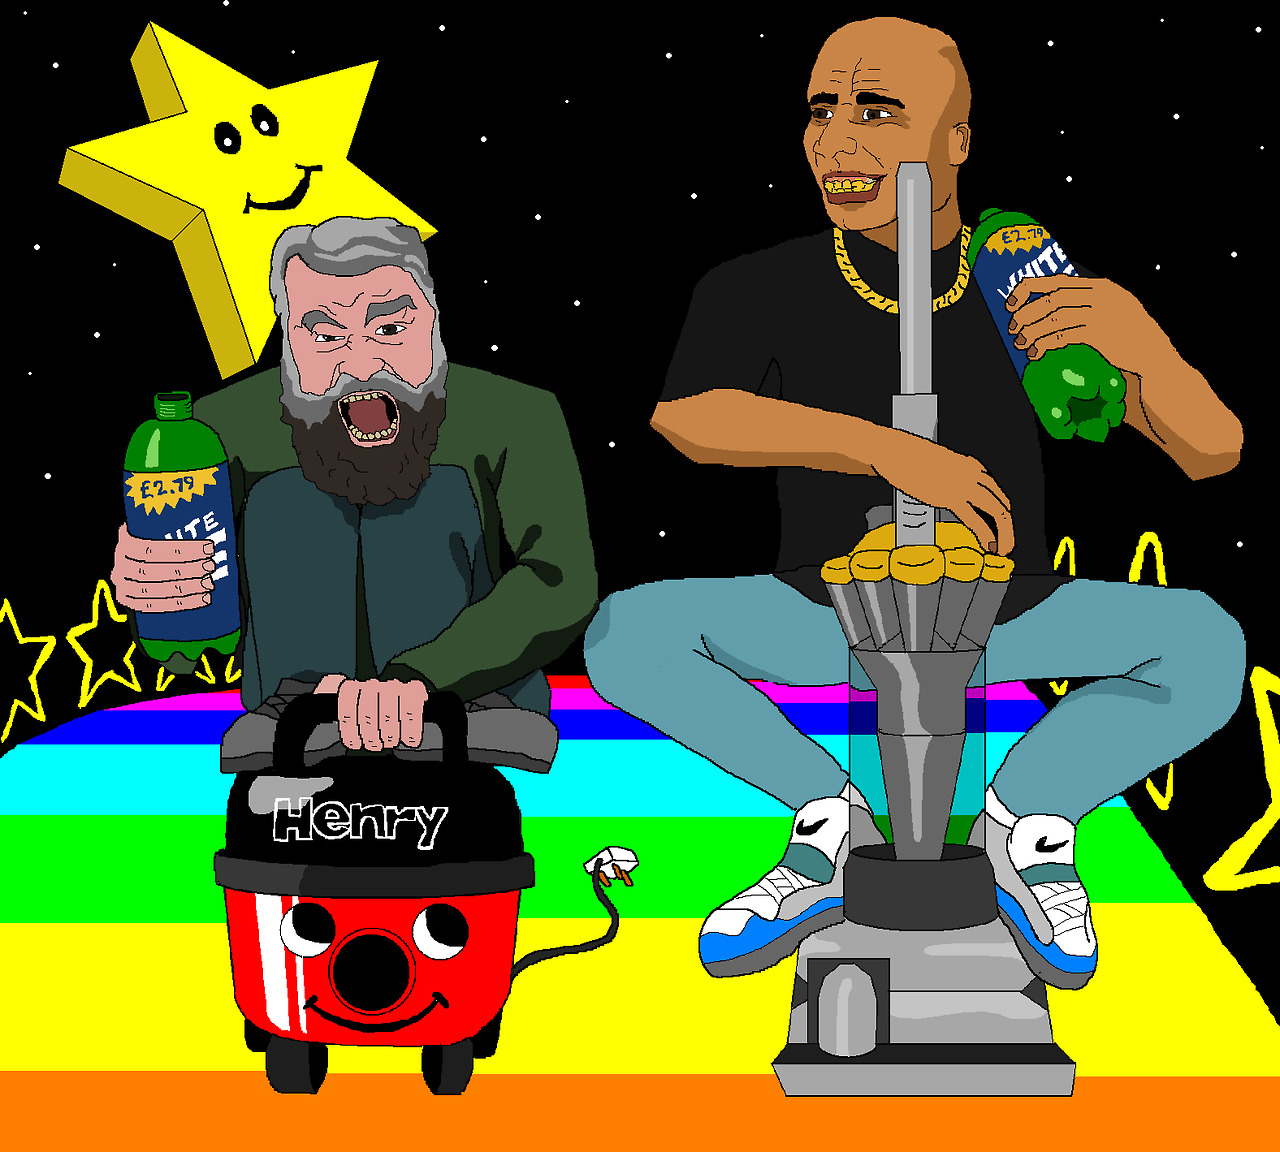 Jim'll Paint It - Brian Blessed riding a Henry hoover alongside D'n'B DJ Goldie on a Dyson.